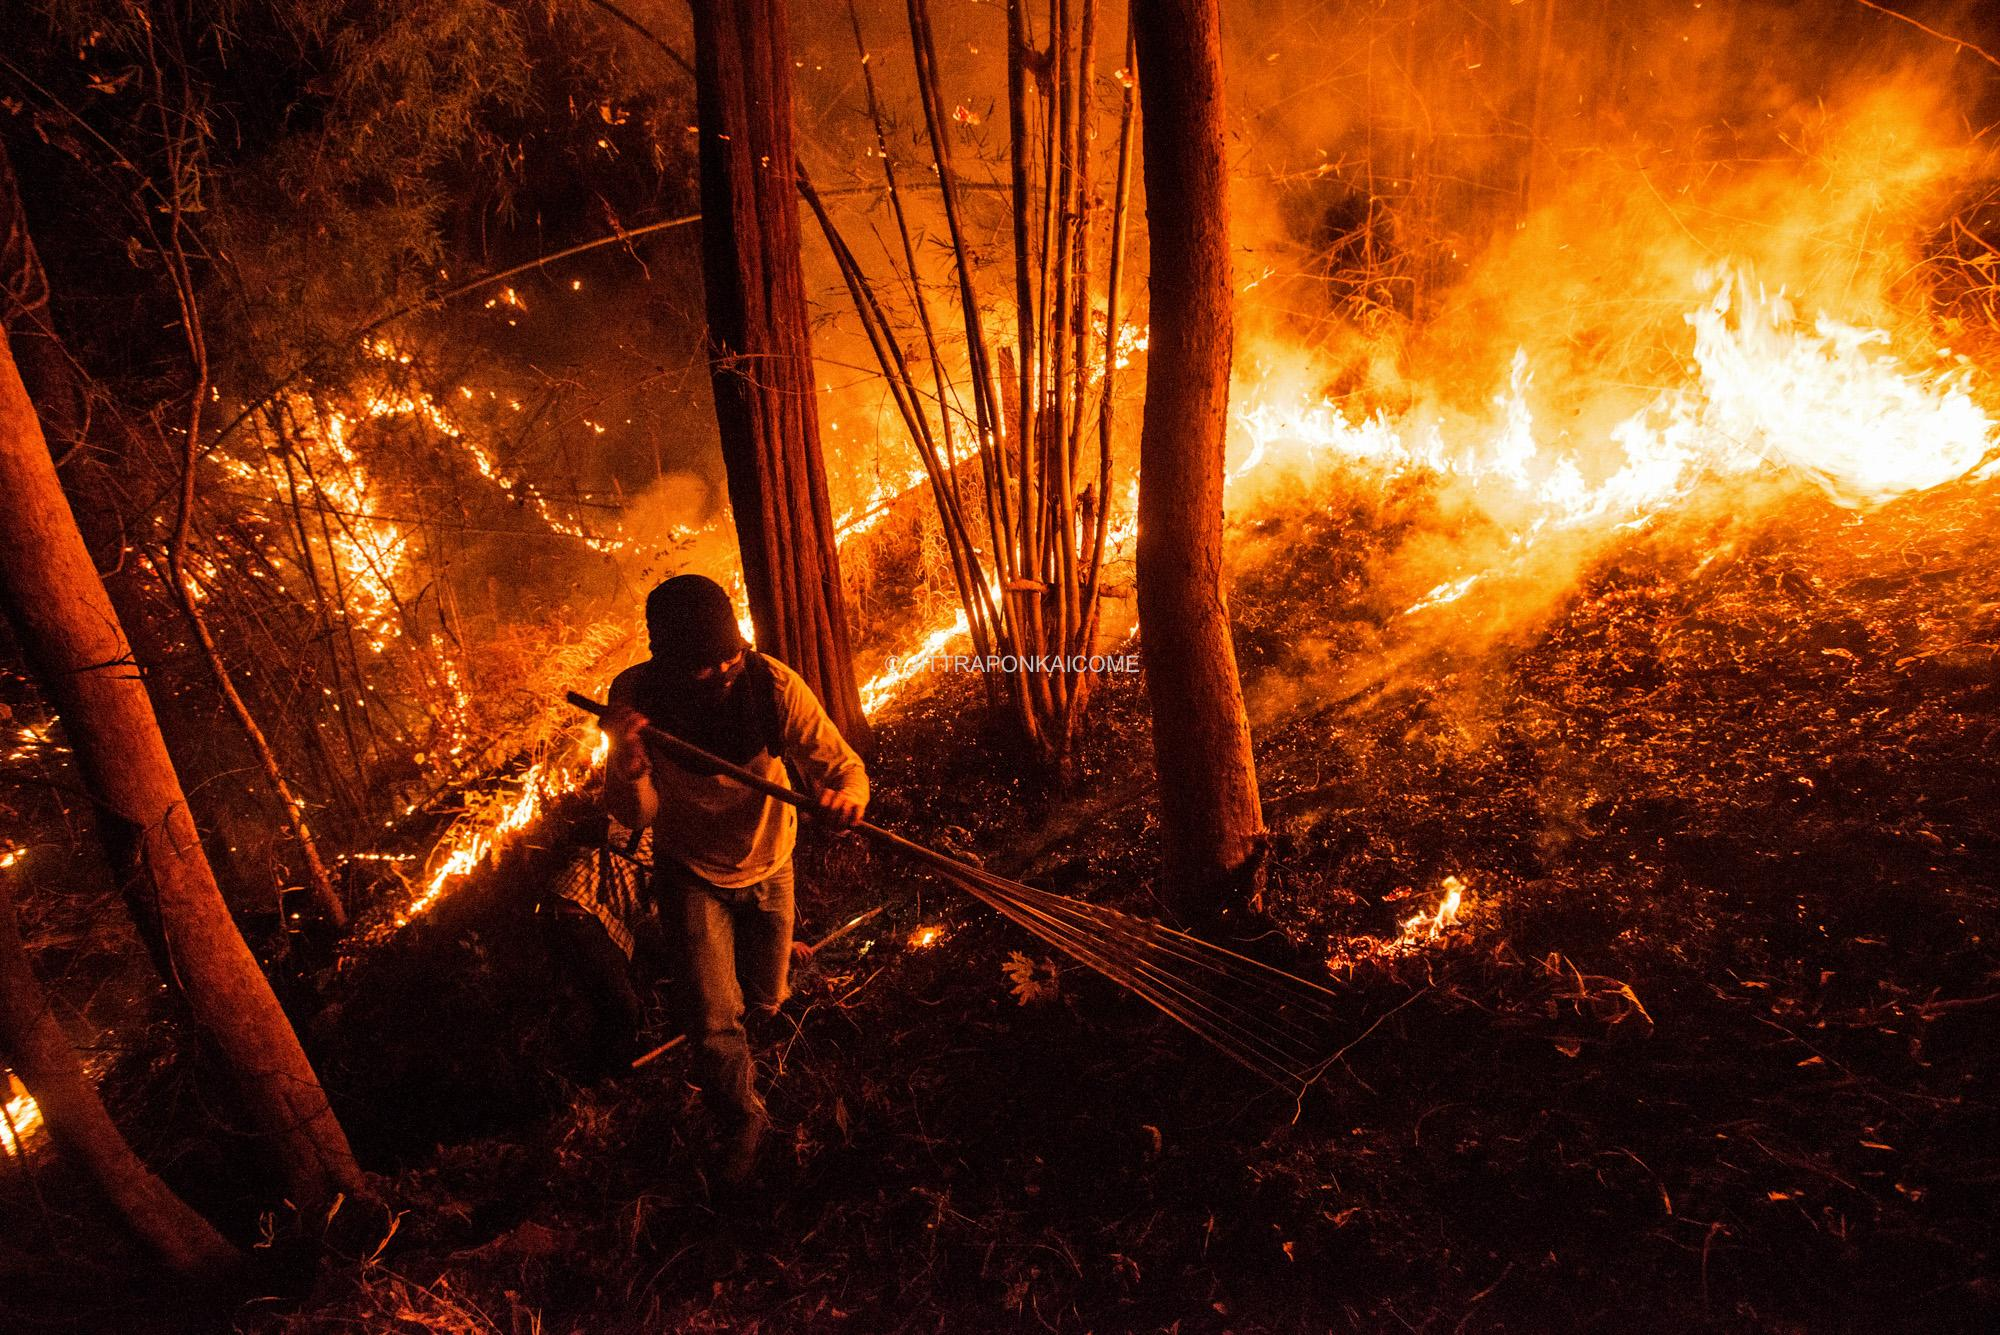 A firefighter hikes through a forest fire, to prevent its further spread during the night time by making a firebreak. 99% of all wildfires are caused by humans. Chiang Mai, Thailand.